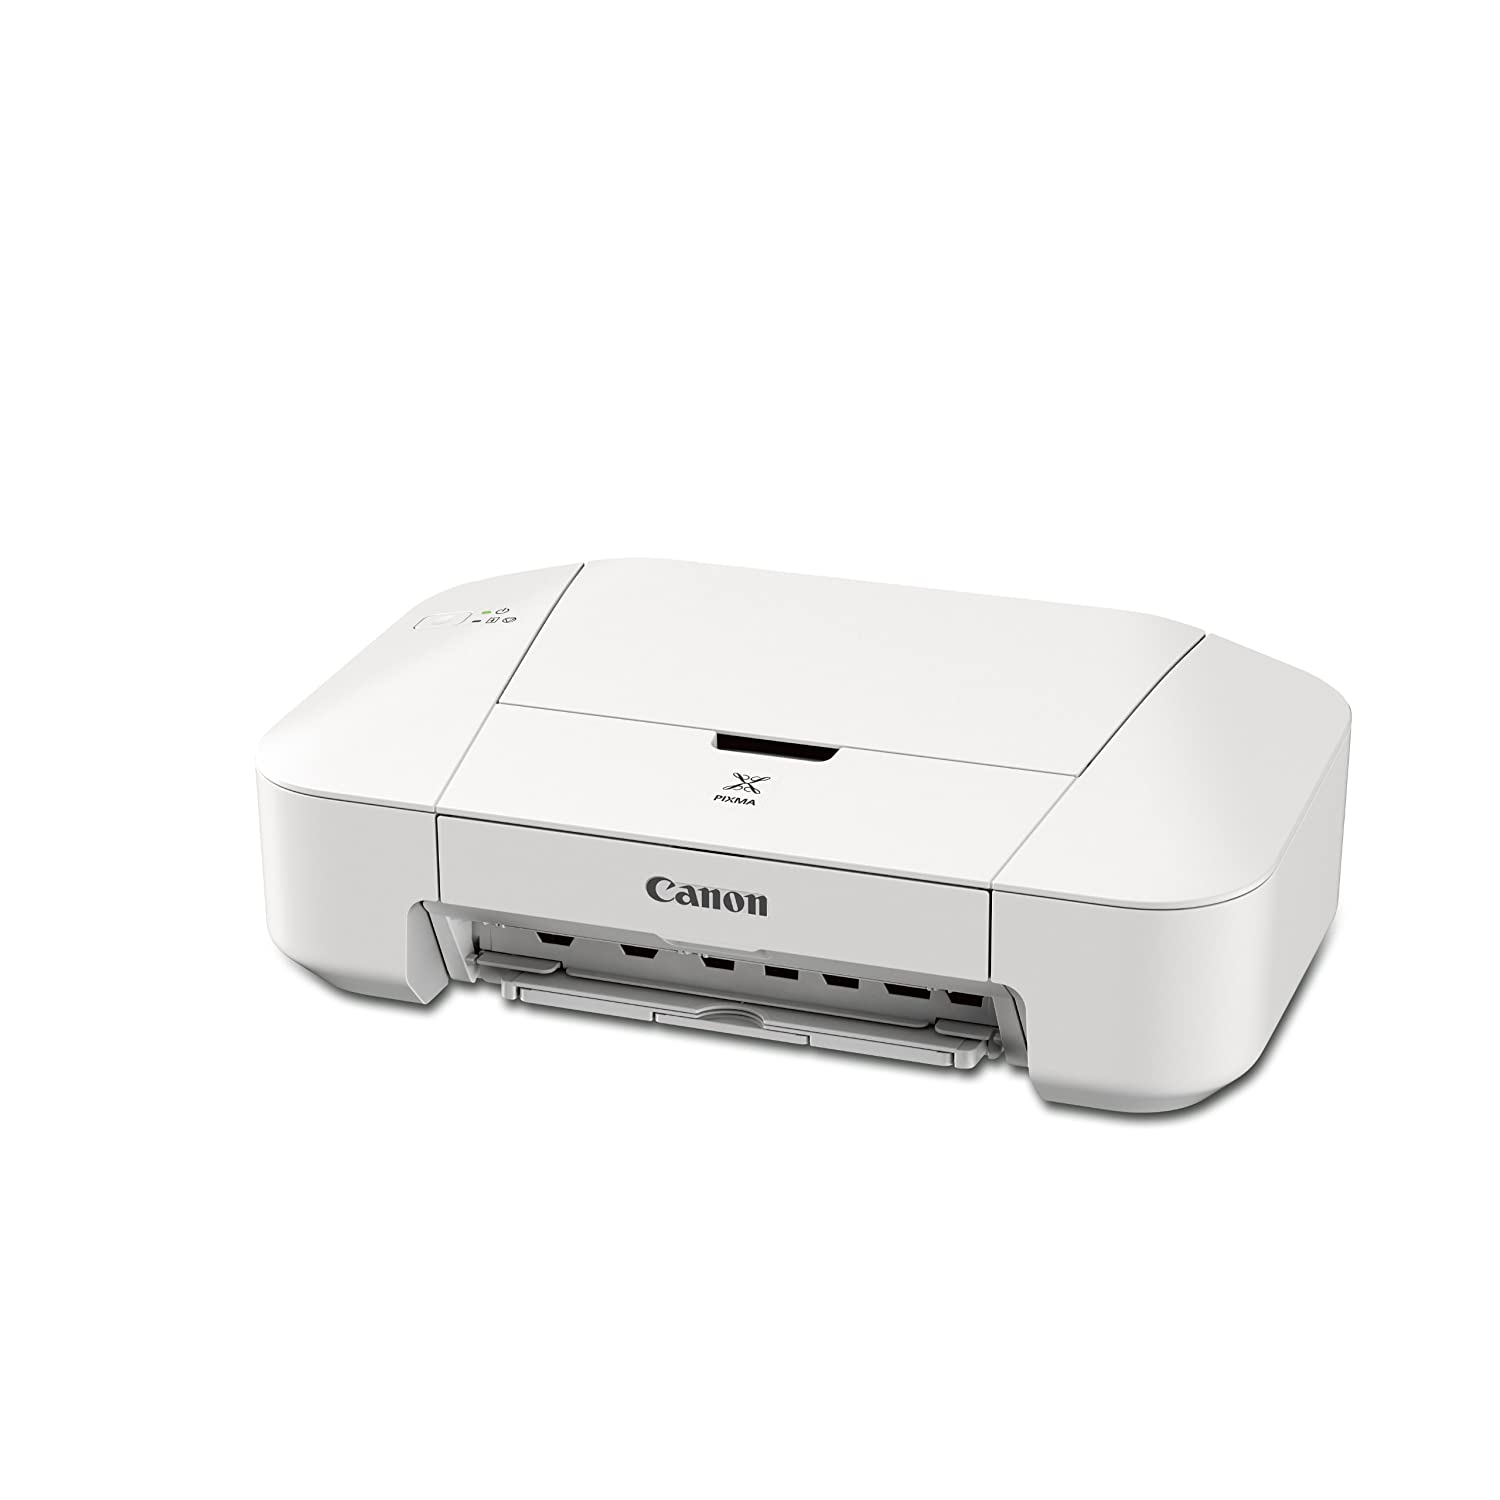 CANON IP2820 WINDOWS XP DRIVER DOWNLOAD